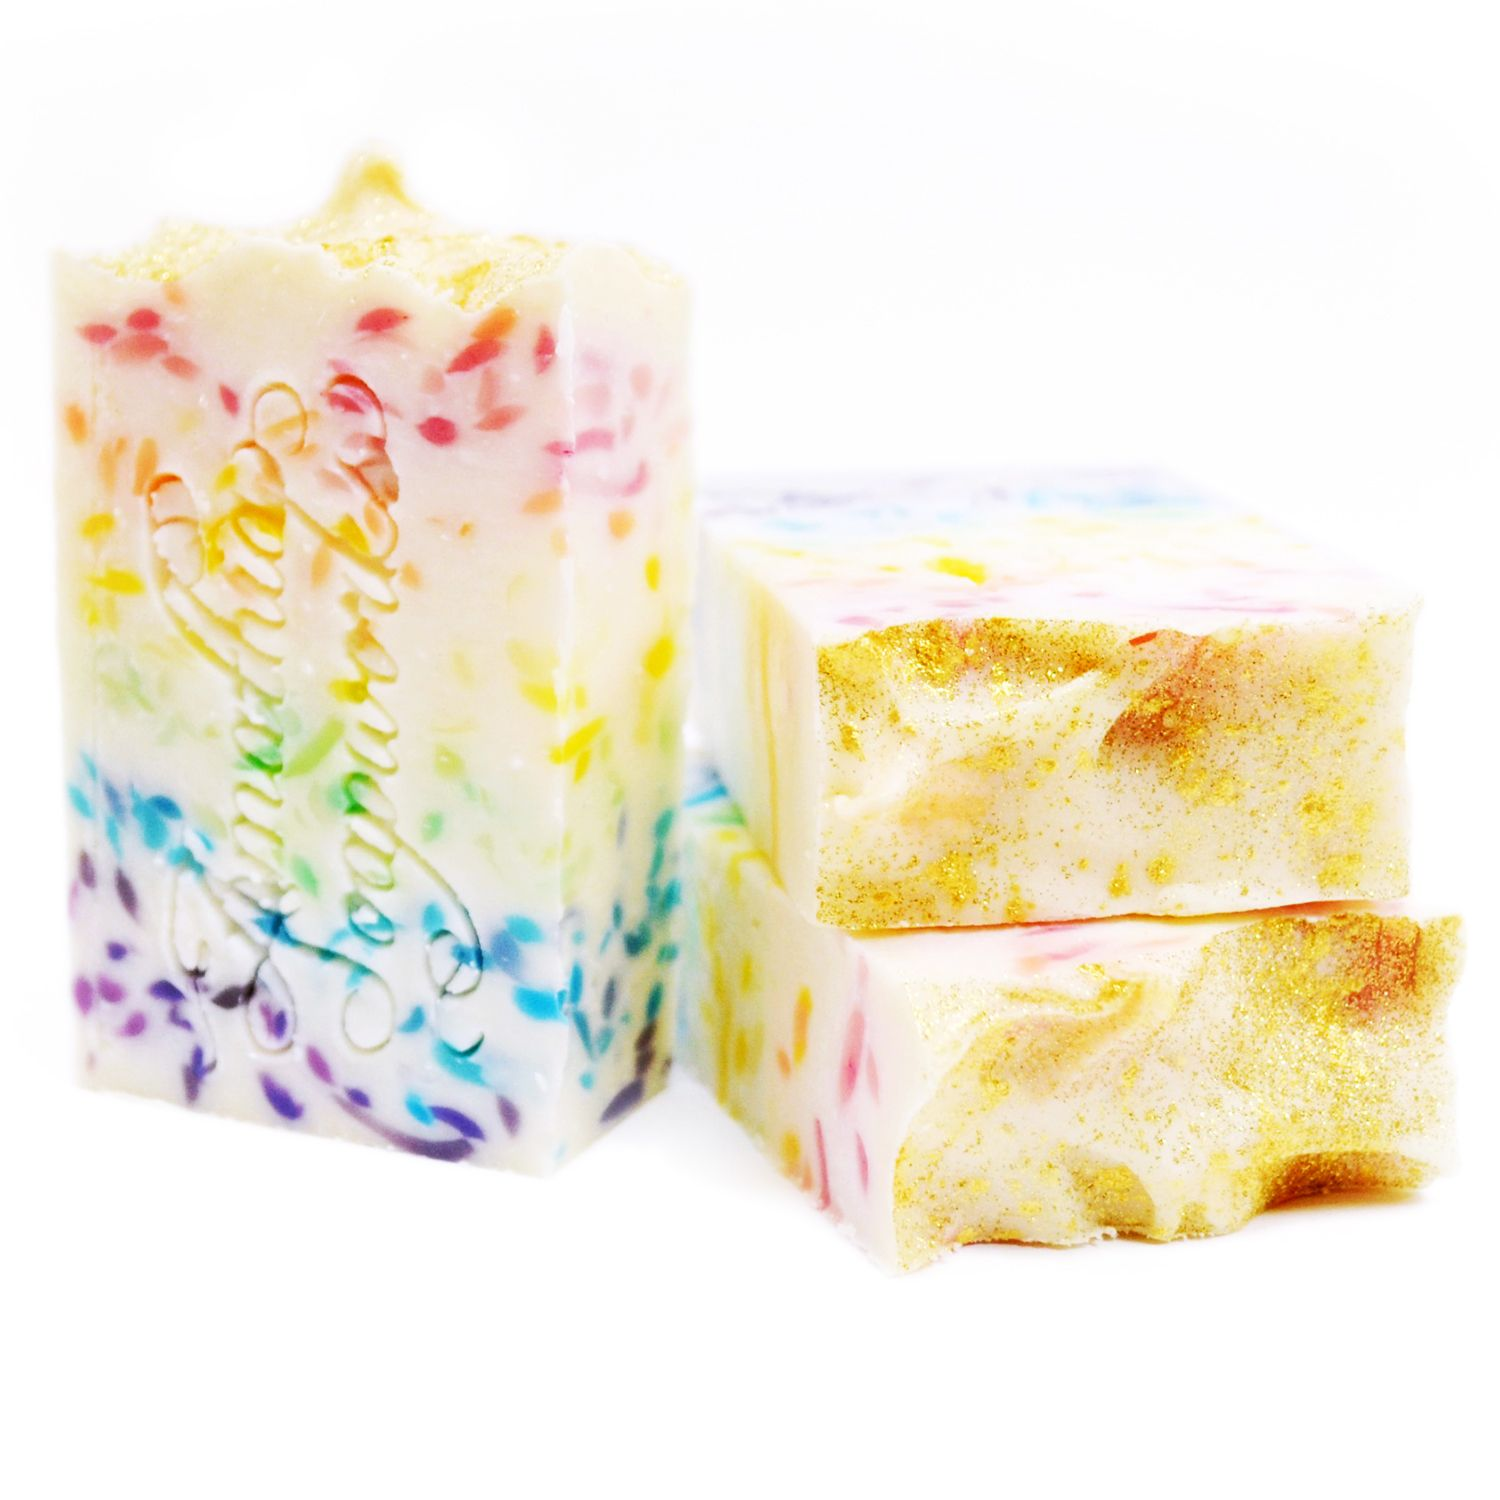 Amazing soaps - with tutorials - from Amathia